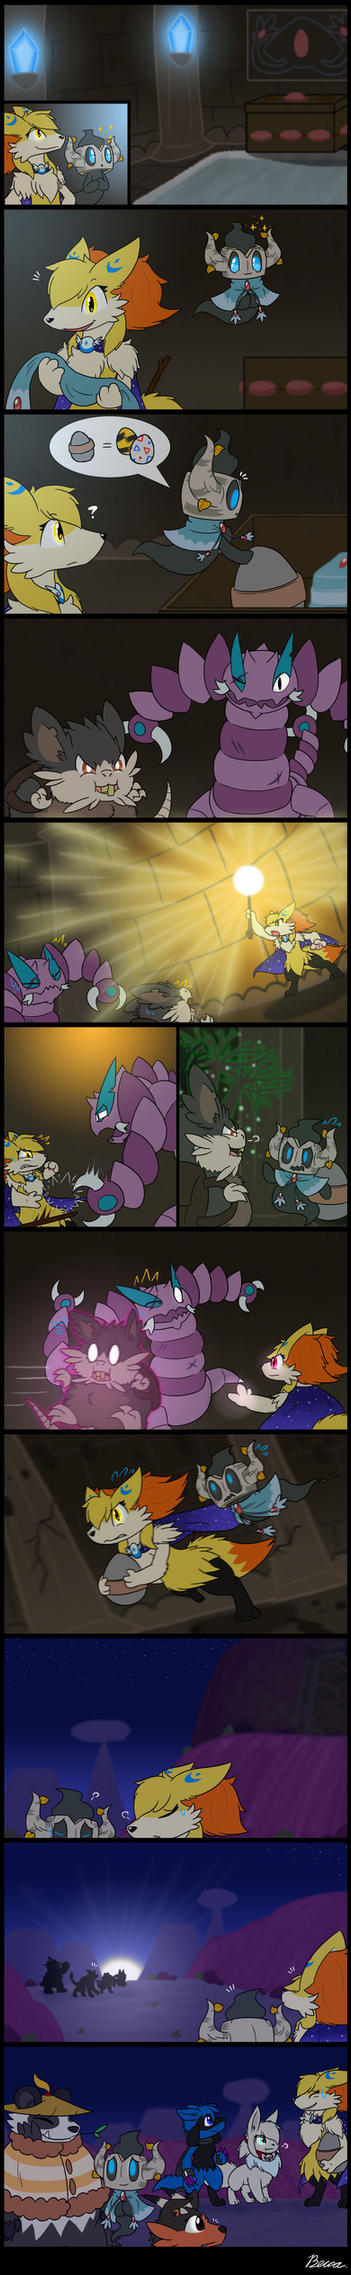 ToT - Hopes On Fire Page 2 by Snowbound-Becca